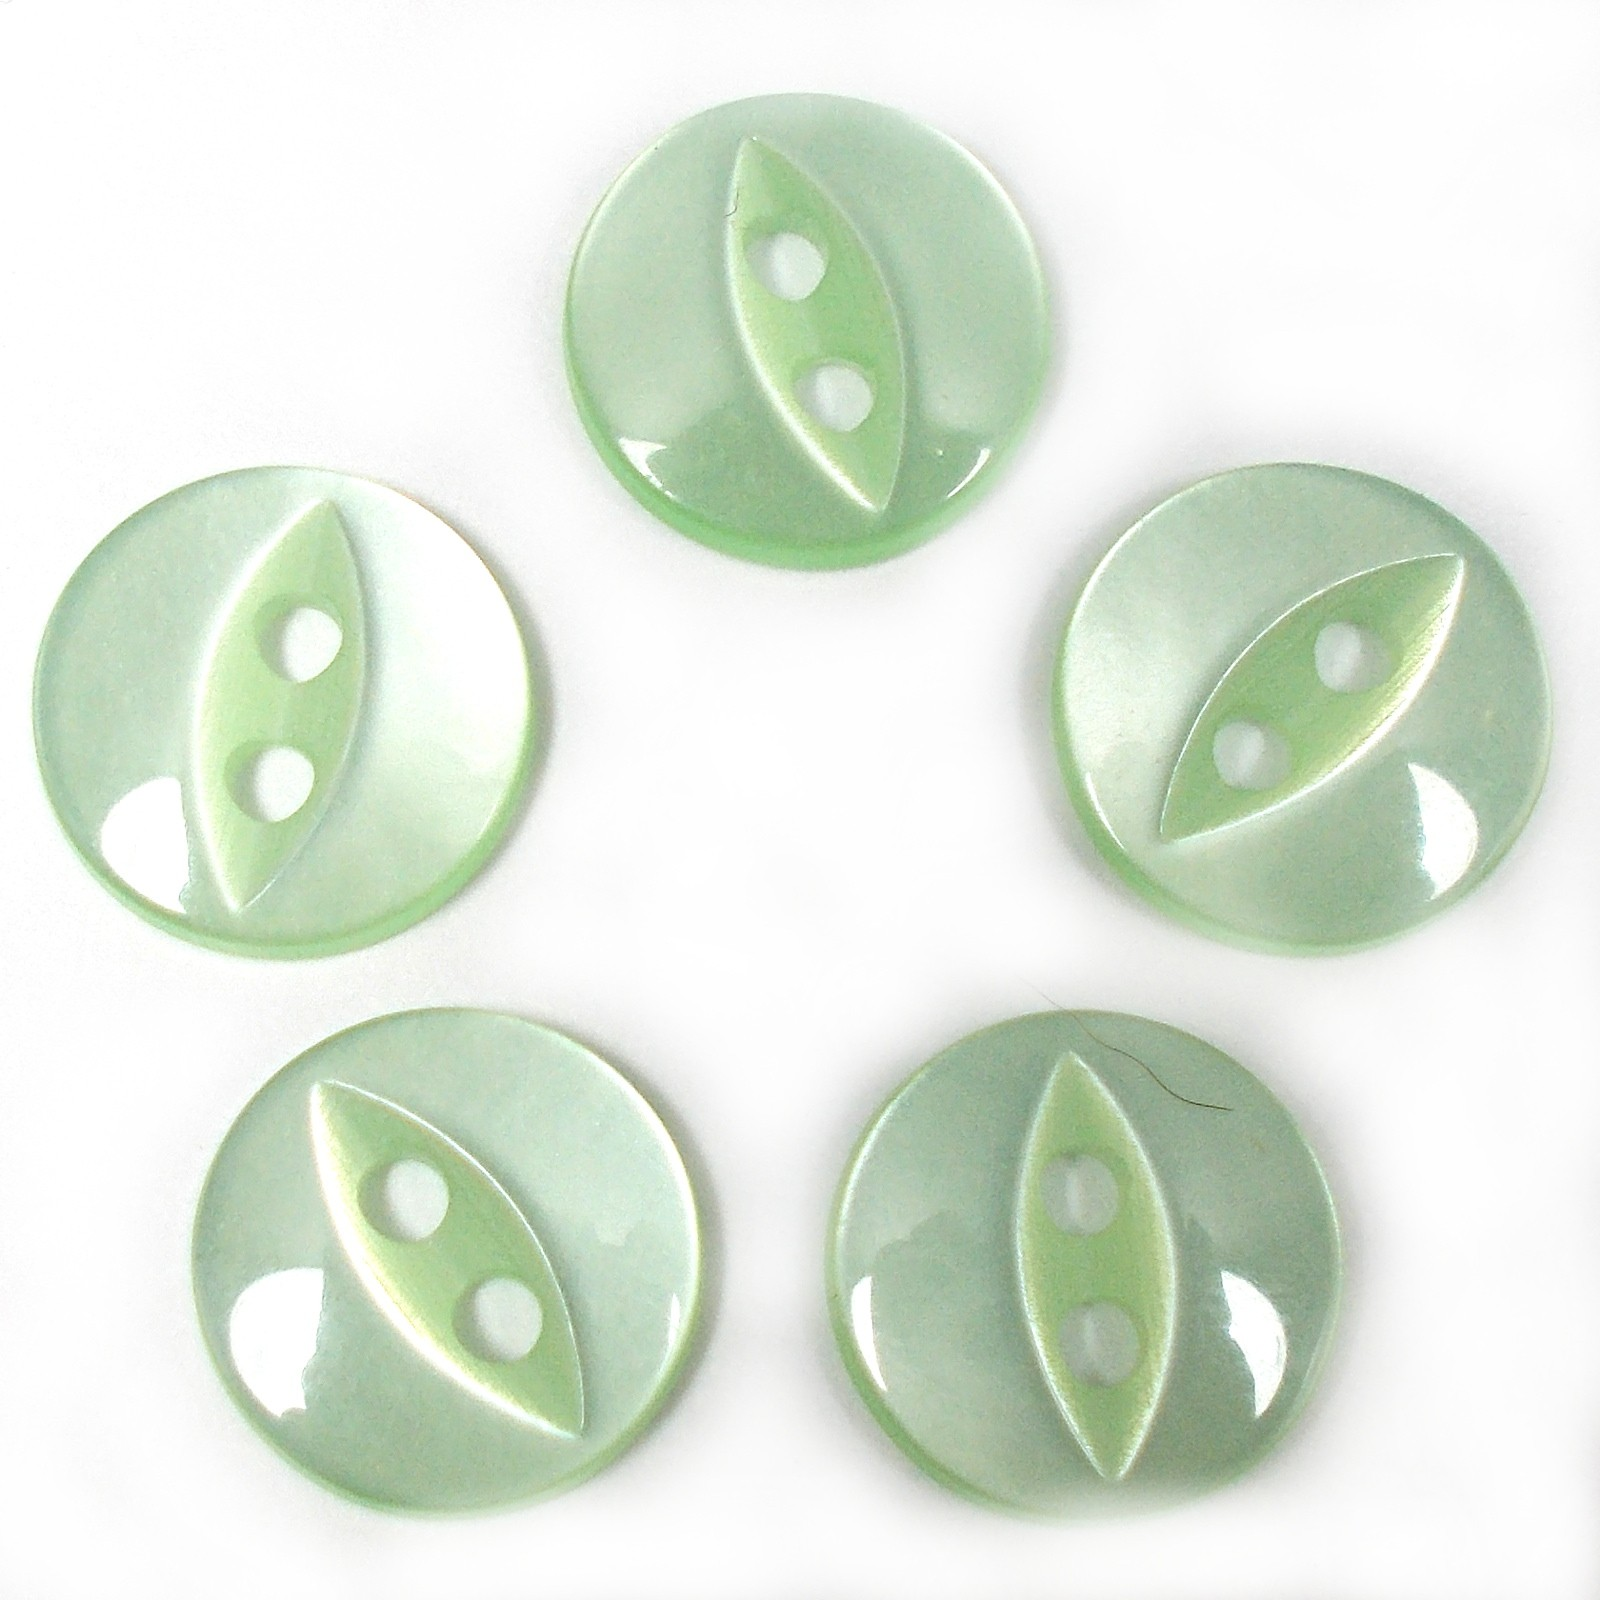 Fisheye Basic Buttons 11mm Mint Green Pack of 5